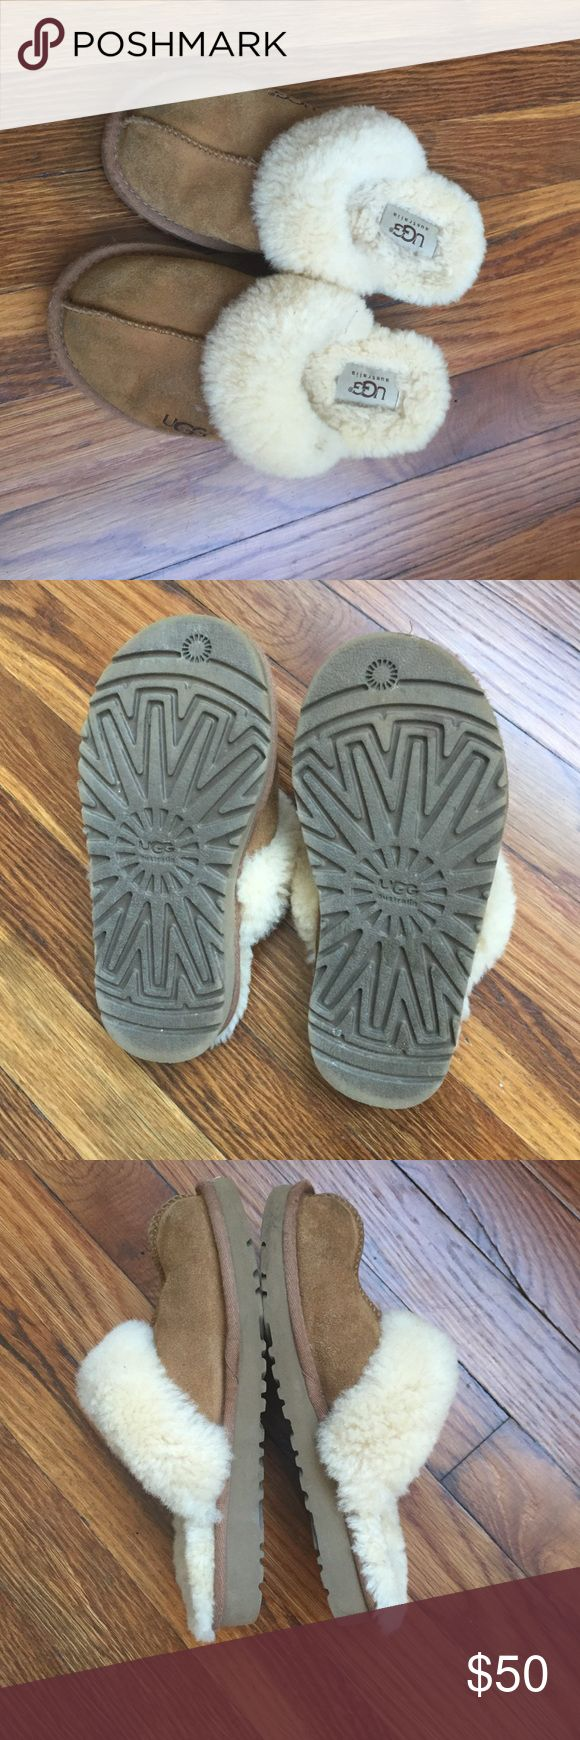 Kids UGG slippers Excellent very gently used condition UGGs slippers. Size 1. Authentic. Chestnut color. UGG Shoes Slippers